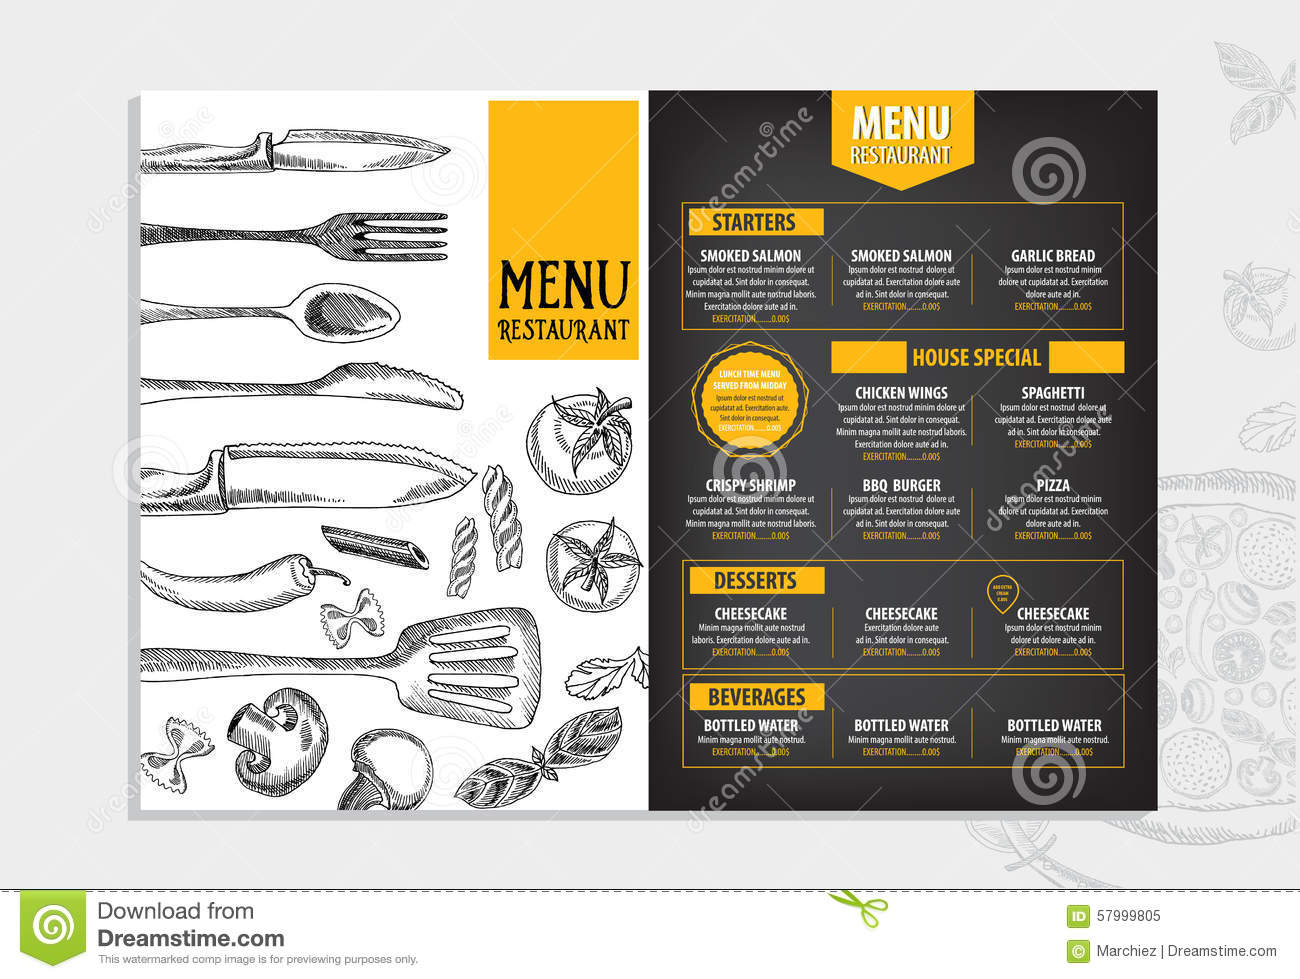 Restaurant Cafe Menu, Template Design. Food Flyer. Drawing, Drinks.  Free Downloadable Restaurant Menu Templates